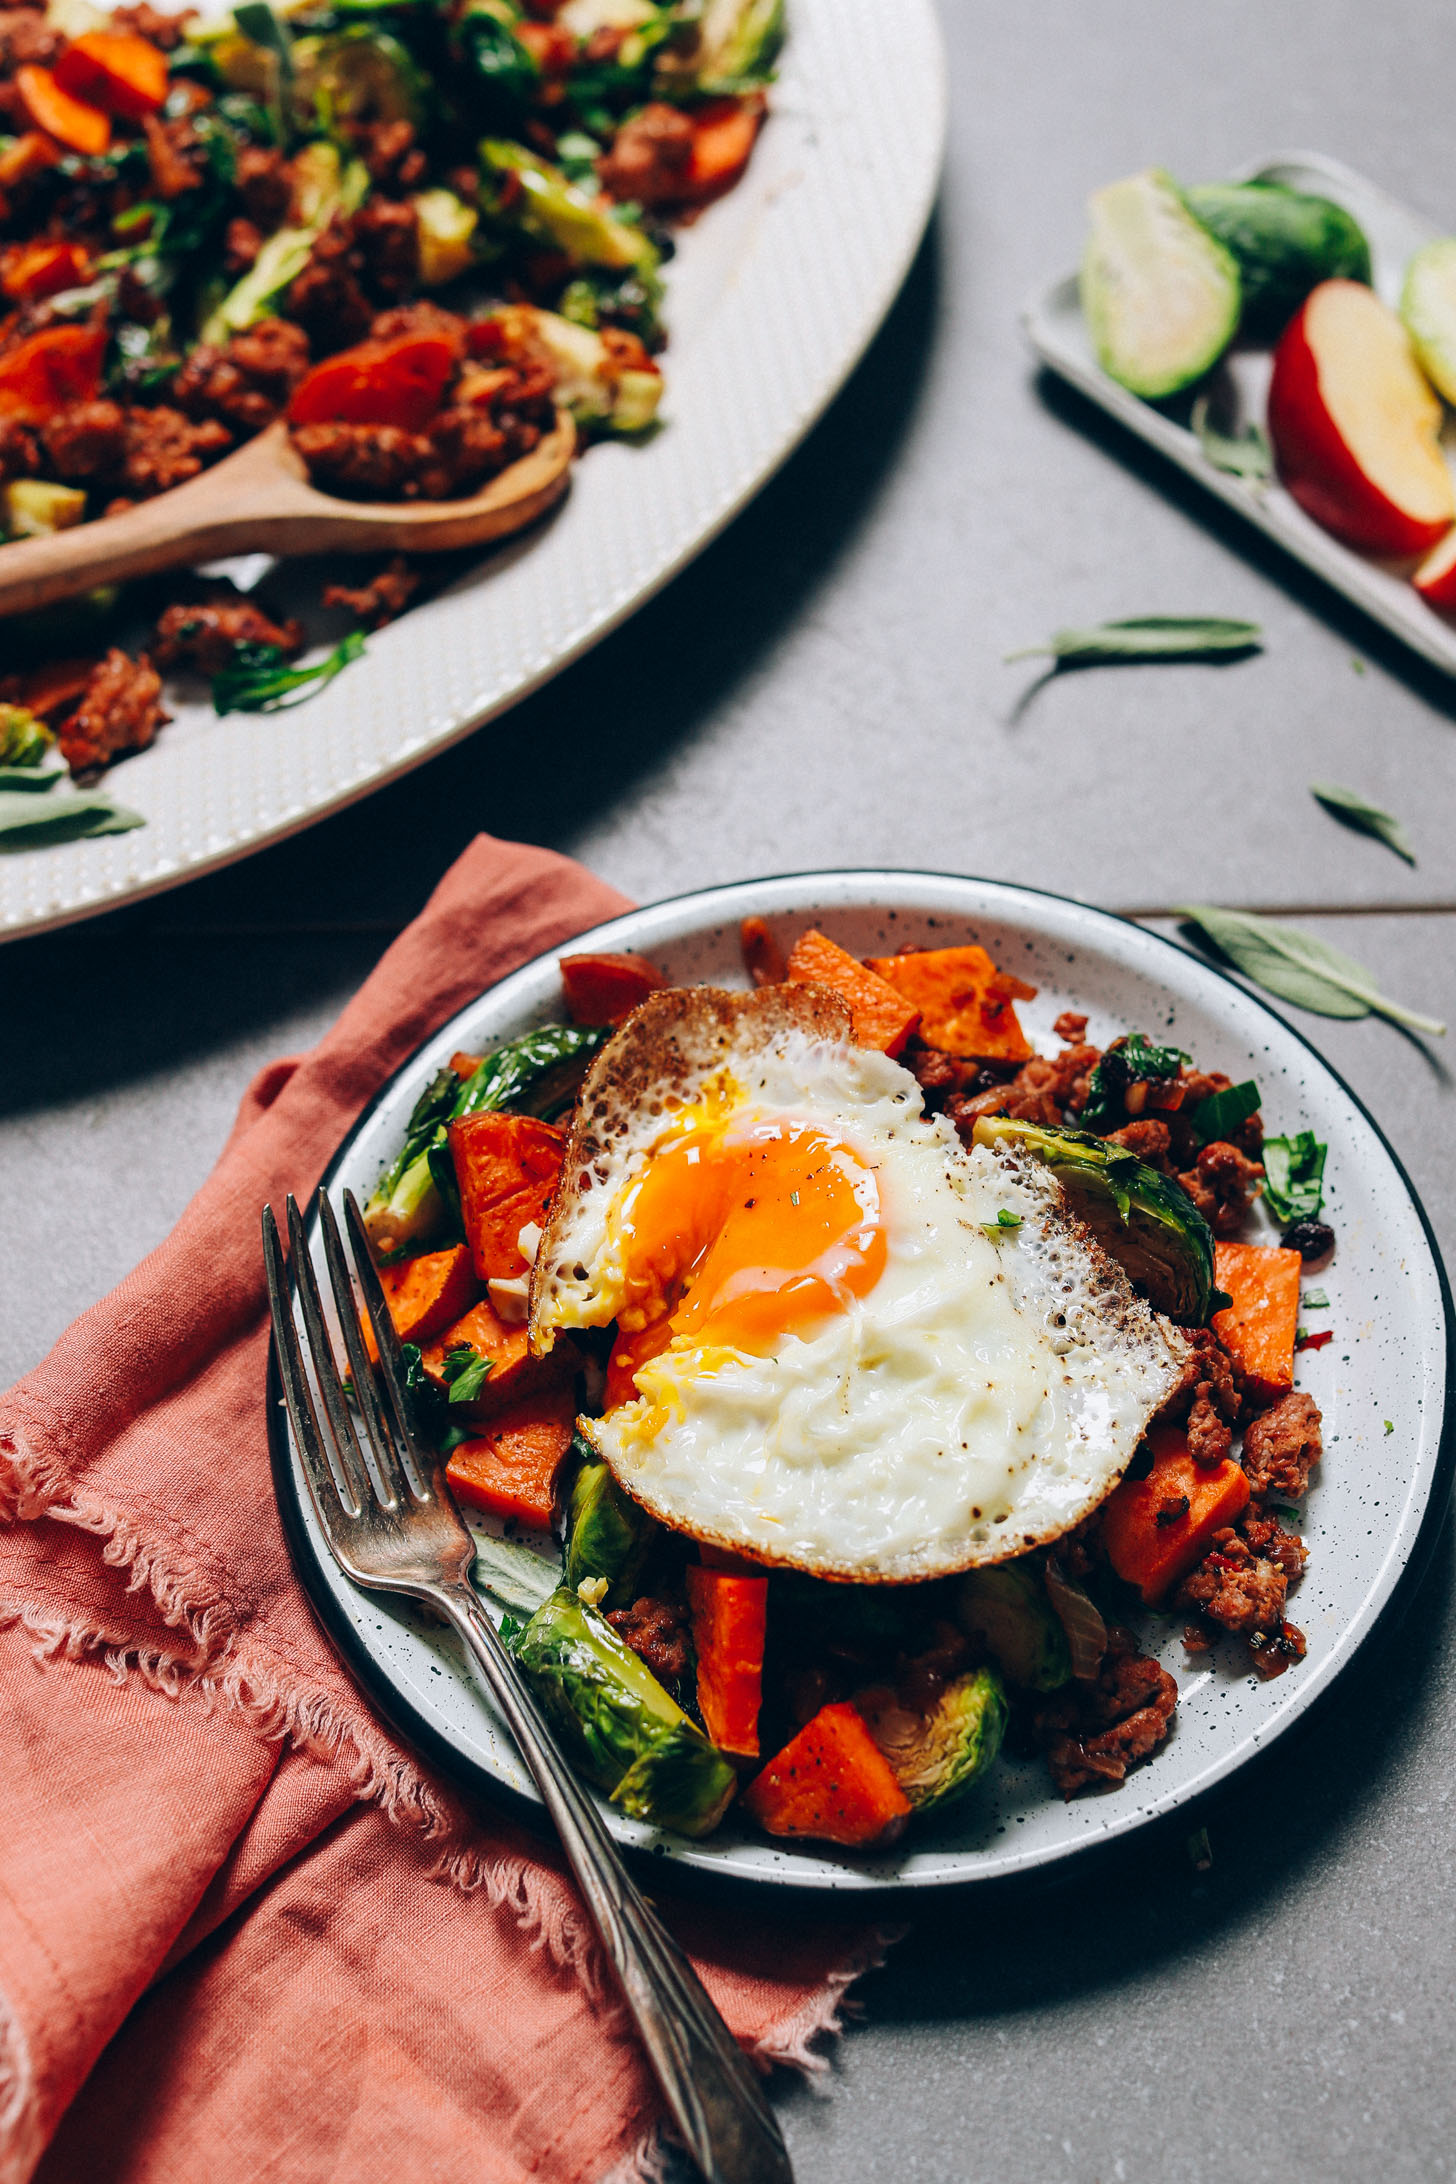 Sunny side up egg atop our Sweet Potato Breakfast Hash perfect for fall